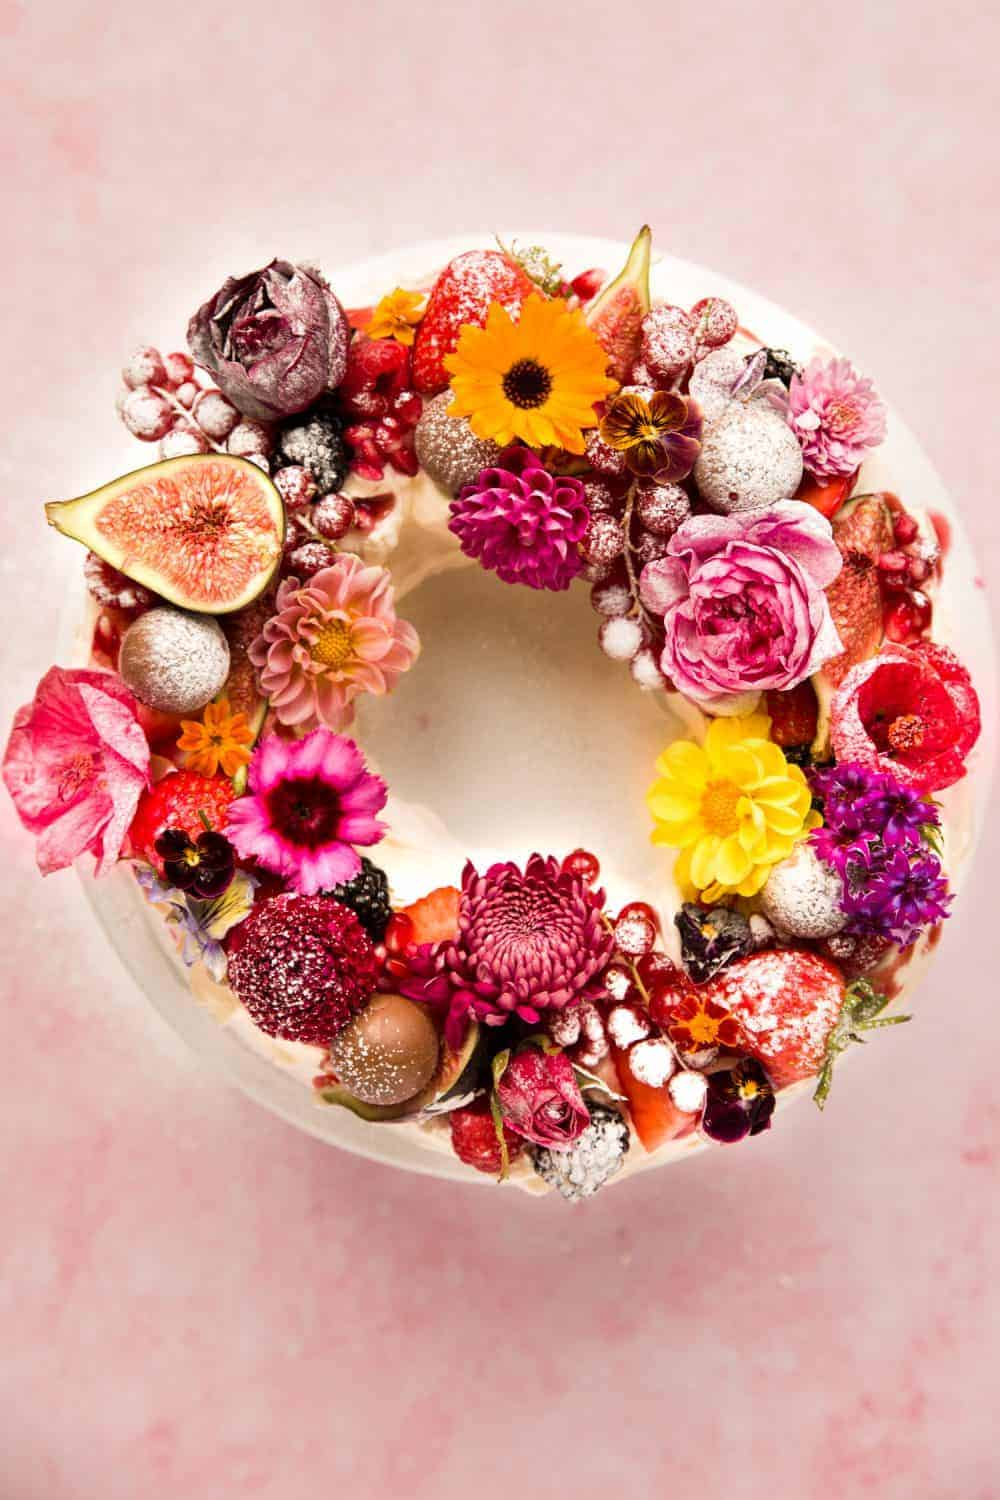 Overhead of a wreath shaped pavlova covered in fruit ad edible flowers.